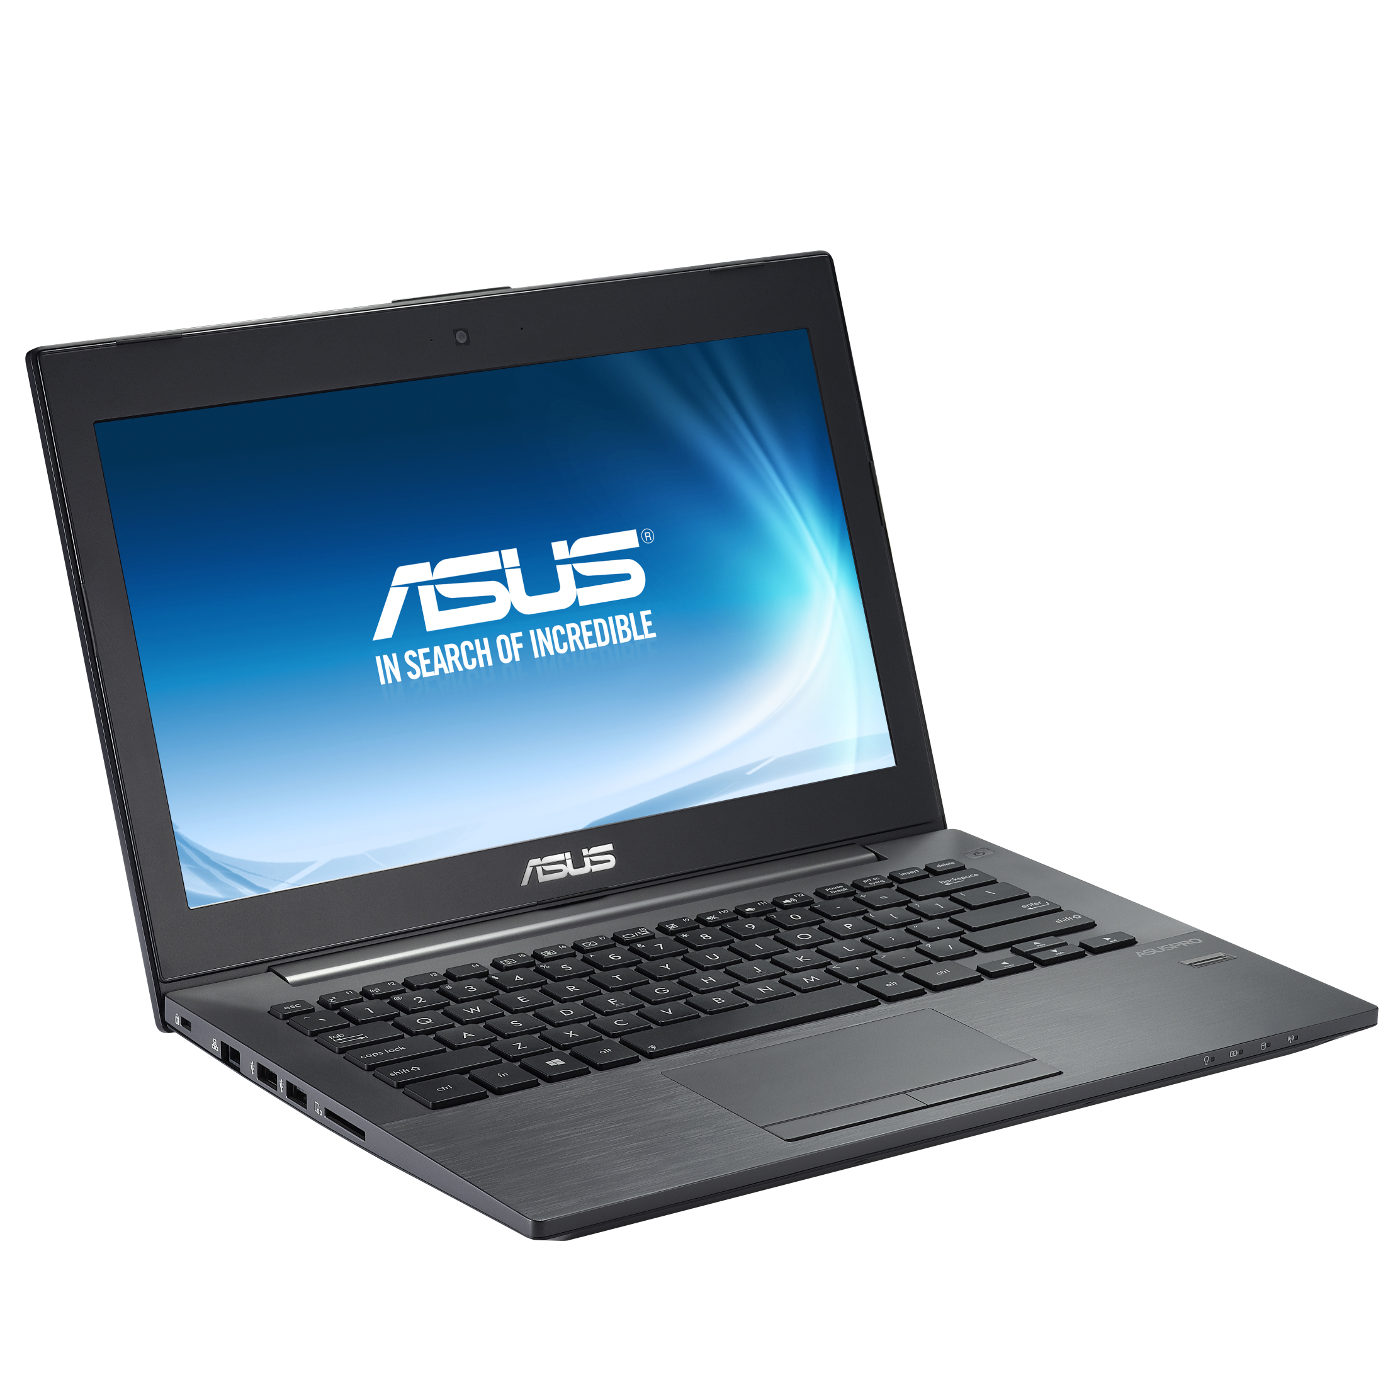 "PC portable ASUS PU301LA-RO122G Intel Core i3-4030U 4 Go 500 Go 13.3"" LED HD Wi-Fi N/Bluetooth Webcam Windows 7 Pro 64 bits + Windows 8 Pro 64 bits (garantie constructeur 2 ans)"